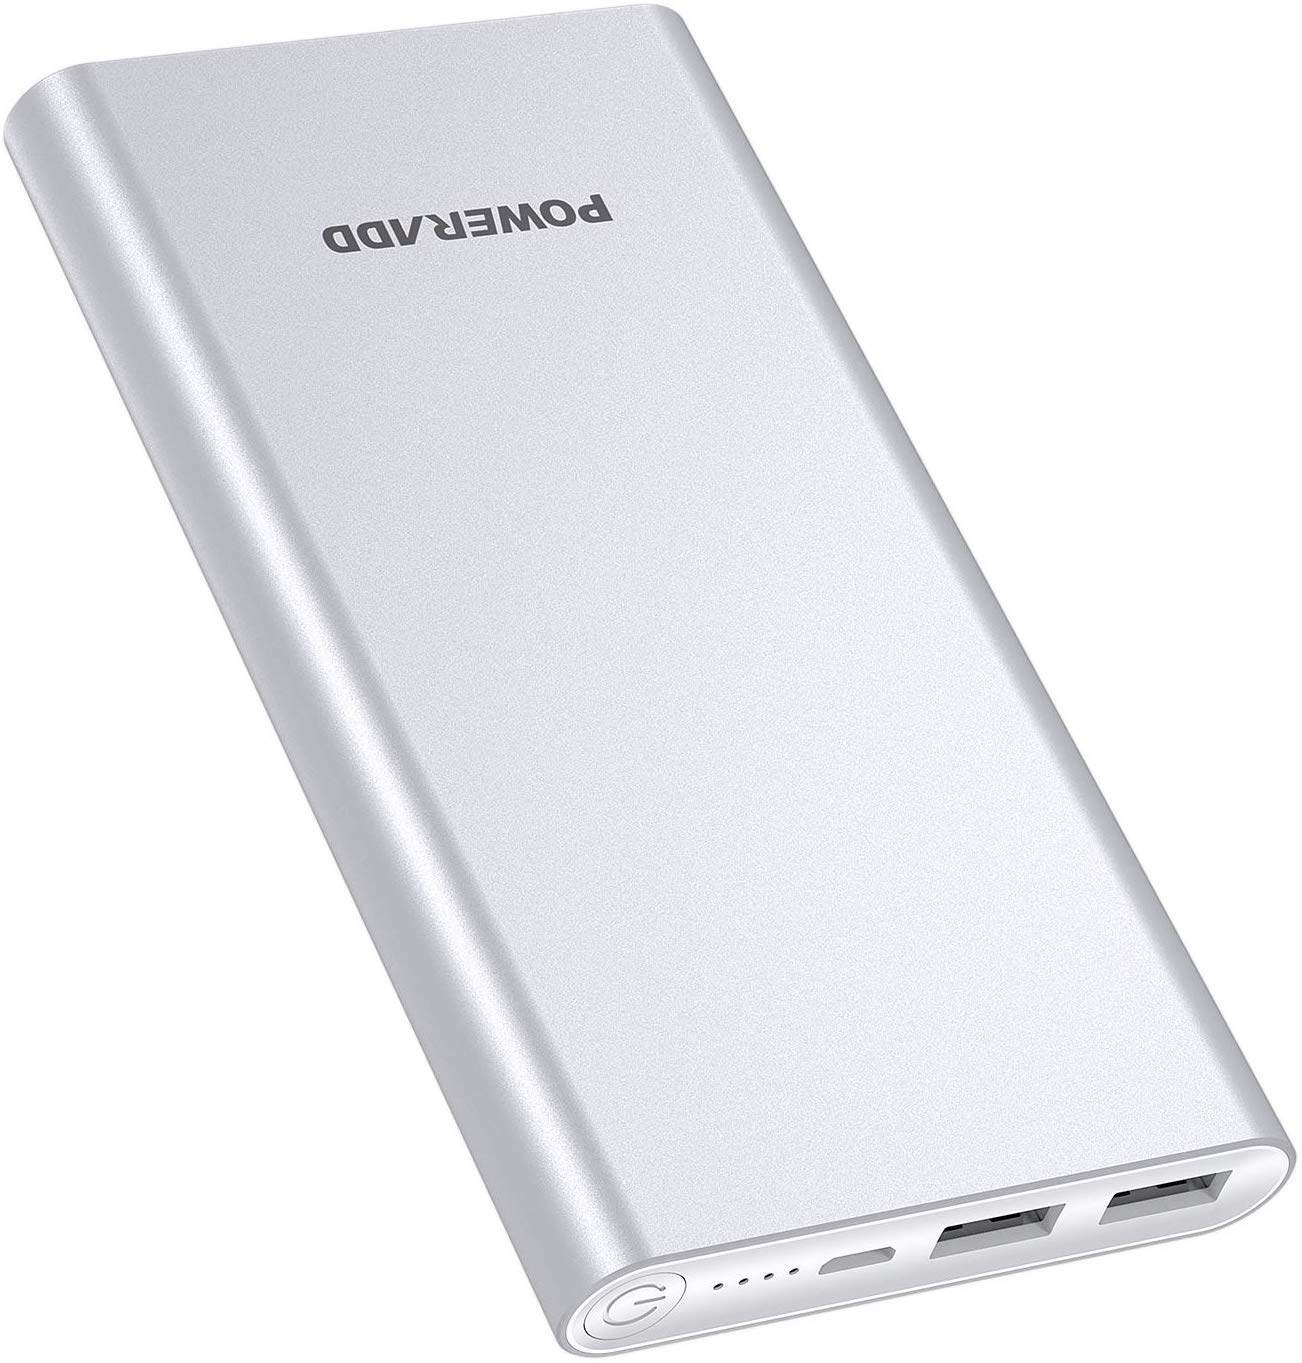 Poweradd Pilot 2GS 10,000mAh Power Bank Only £9.55 on Amazon